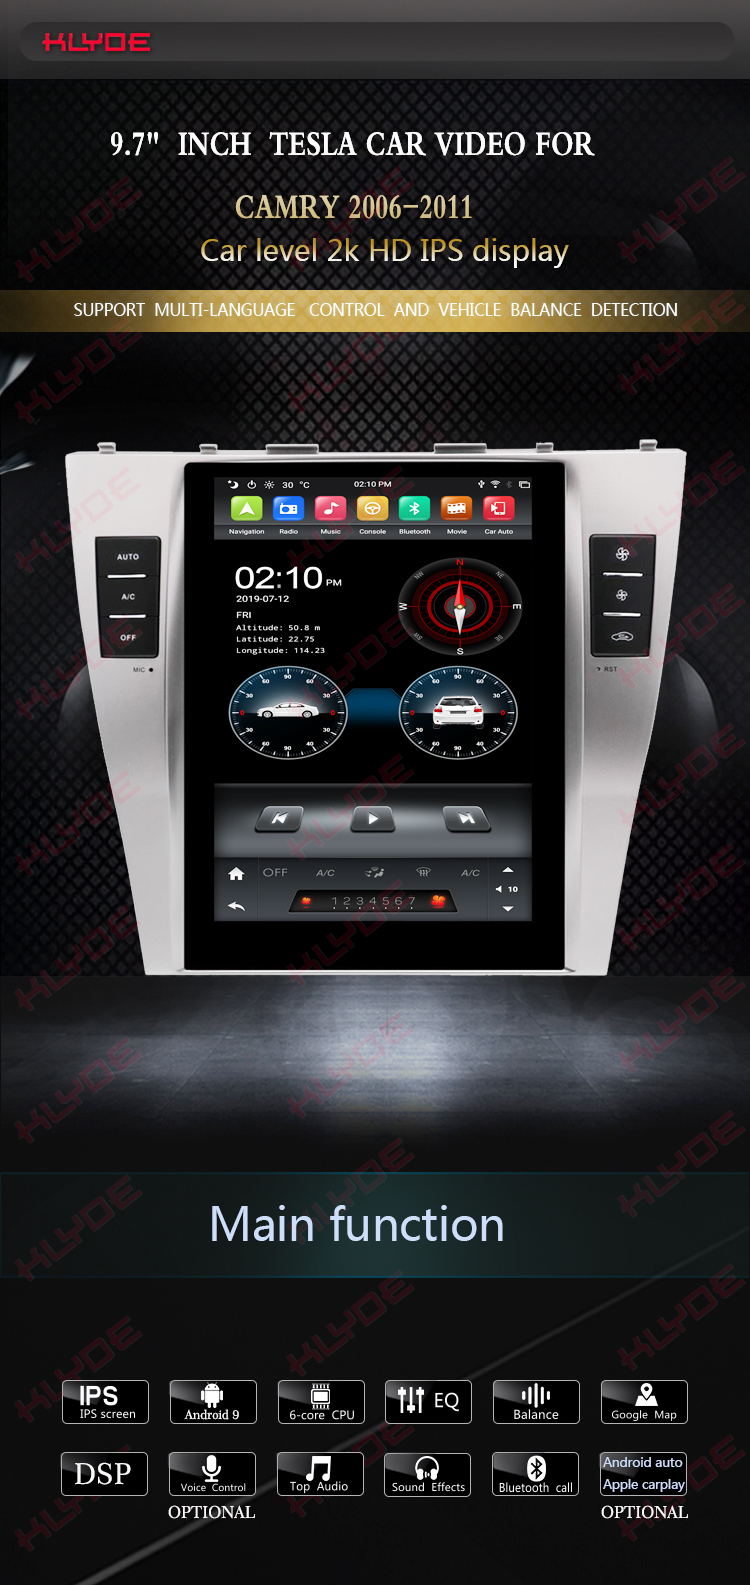 tesla car audio video player for Toyota Camry 2007